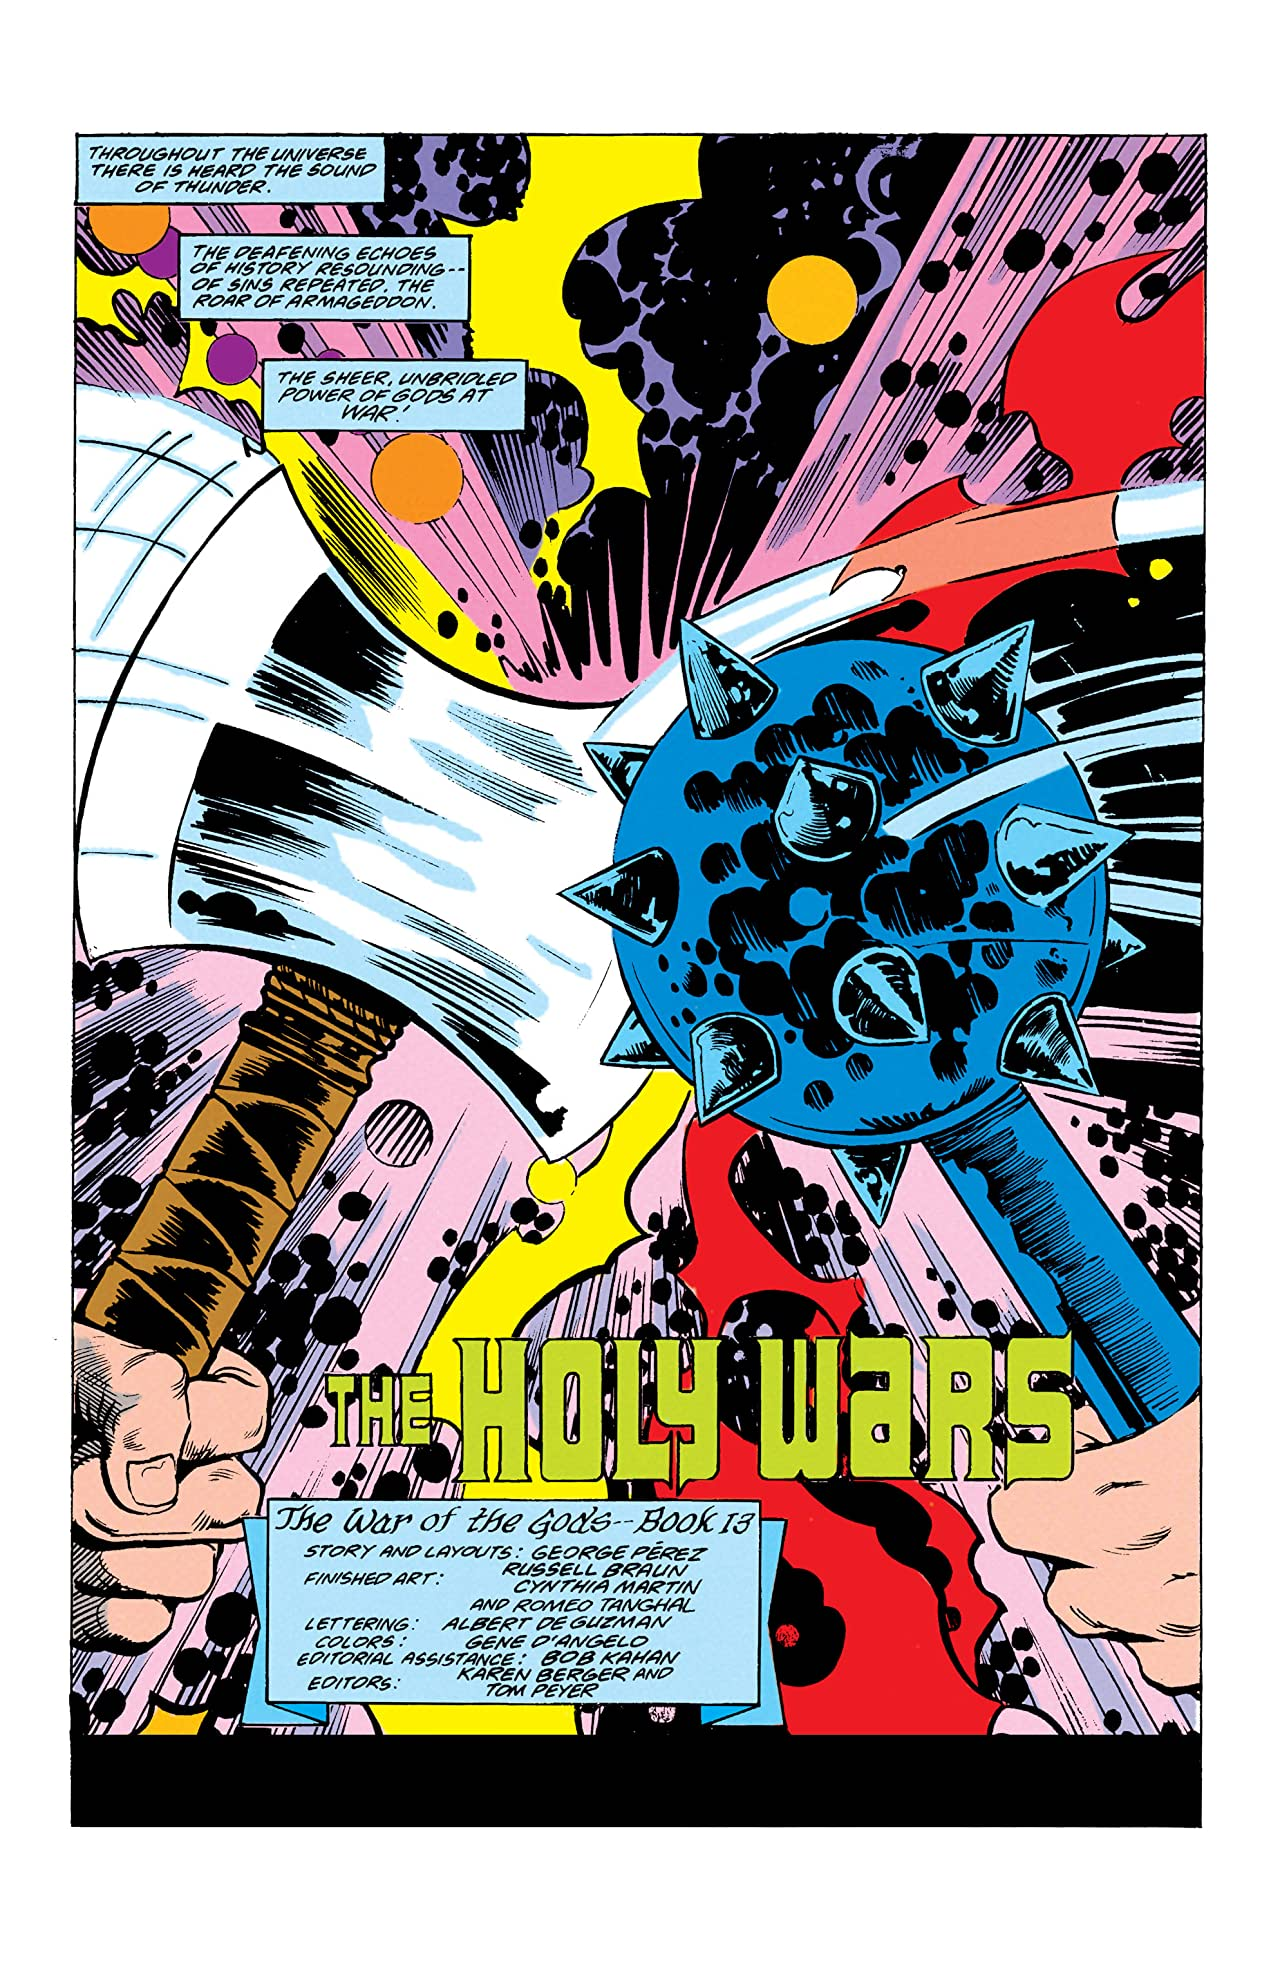 The War of the Gods (1991) #2